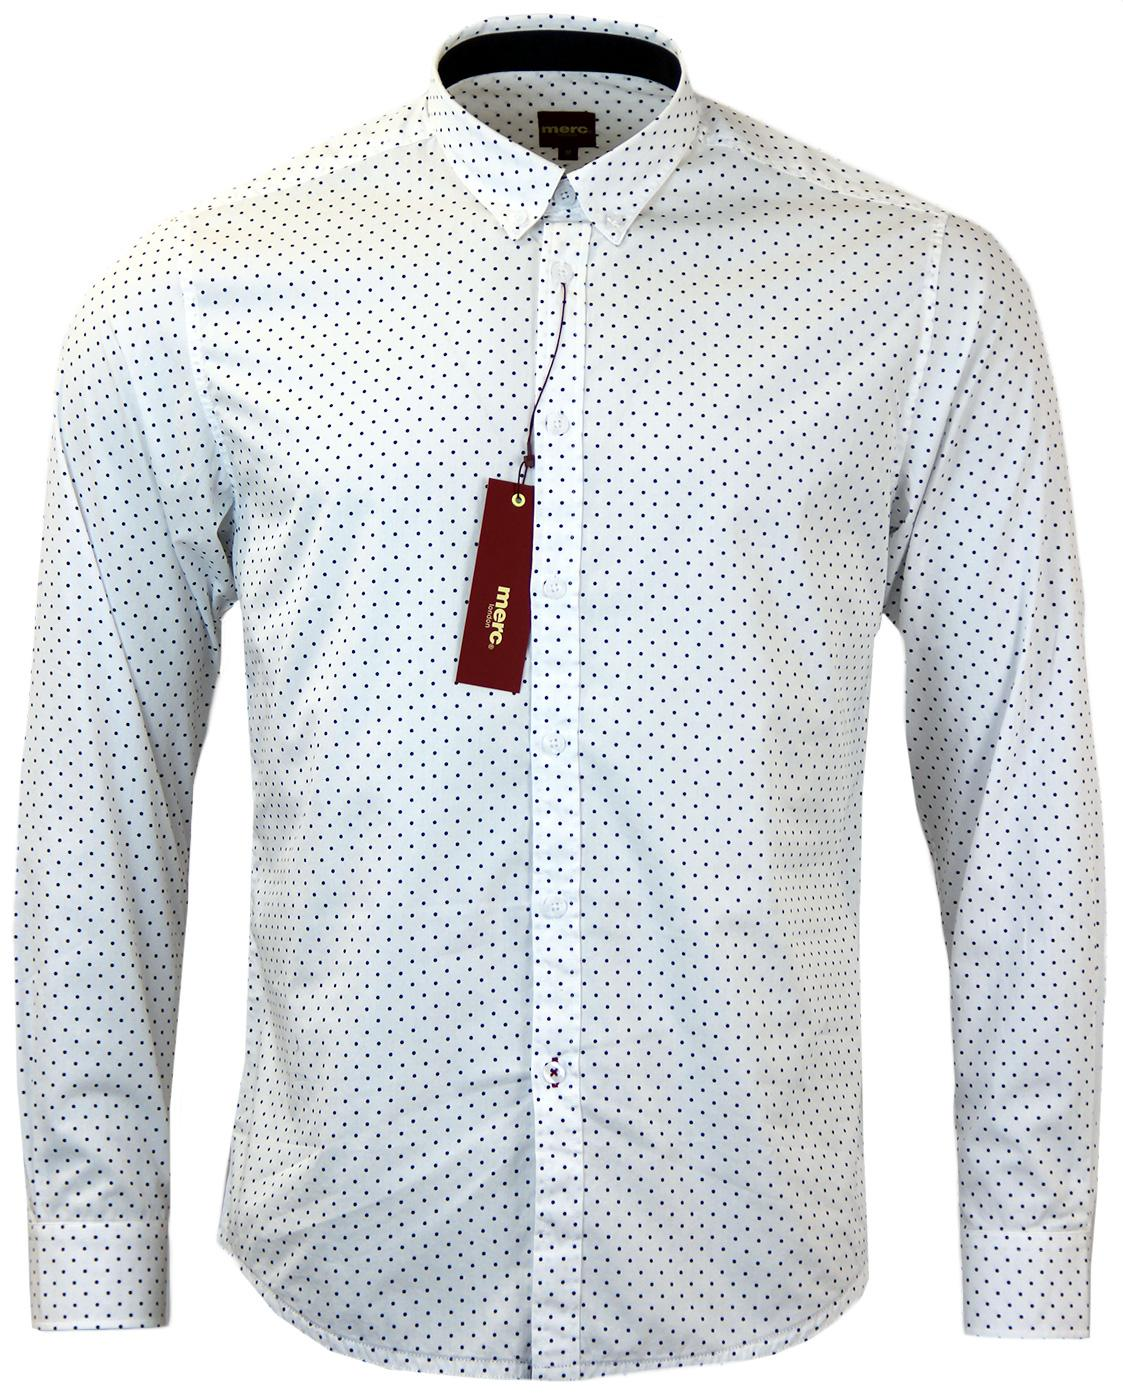 Siegel MERC Retro Sixties Polka Dot Mod Shirt W